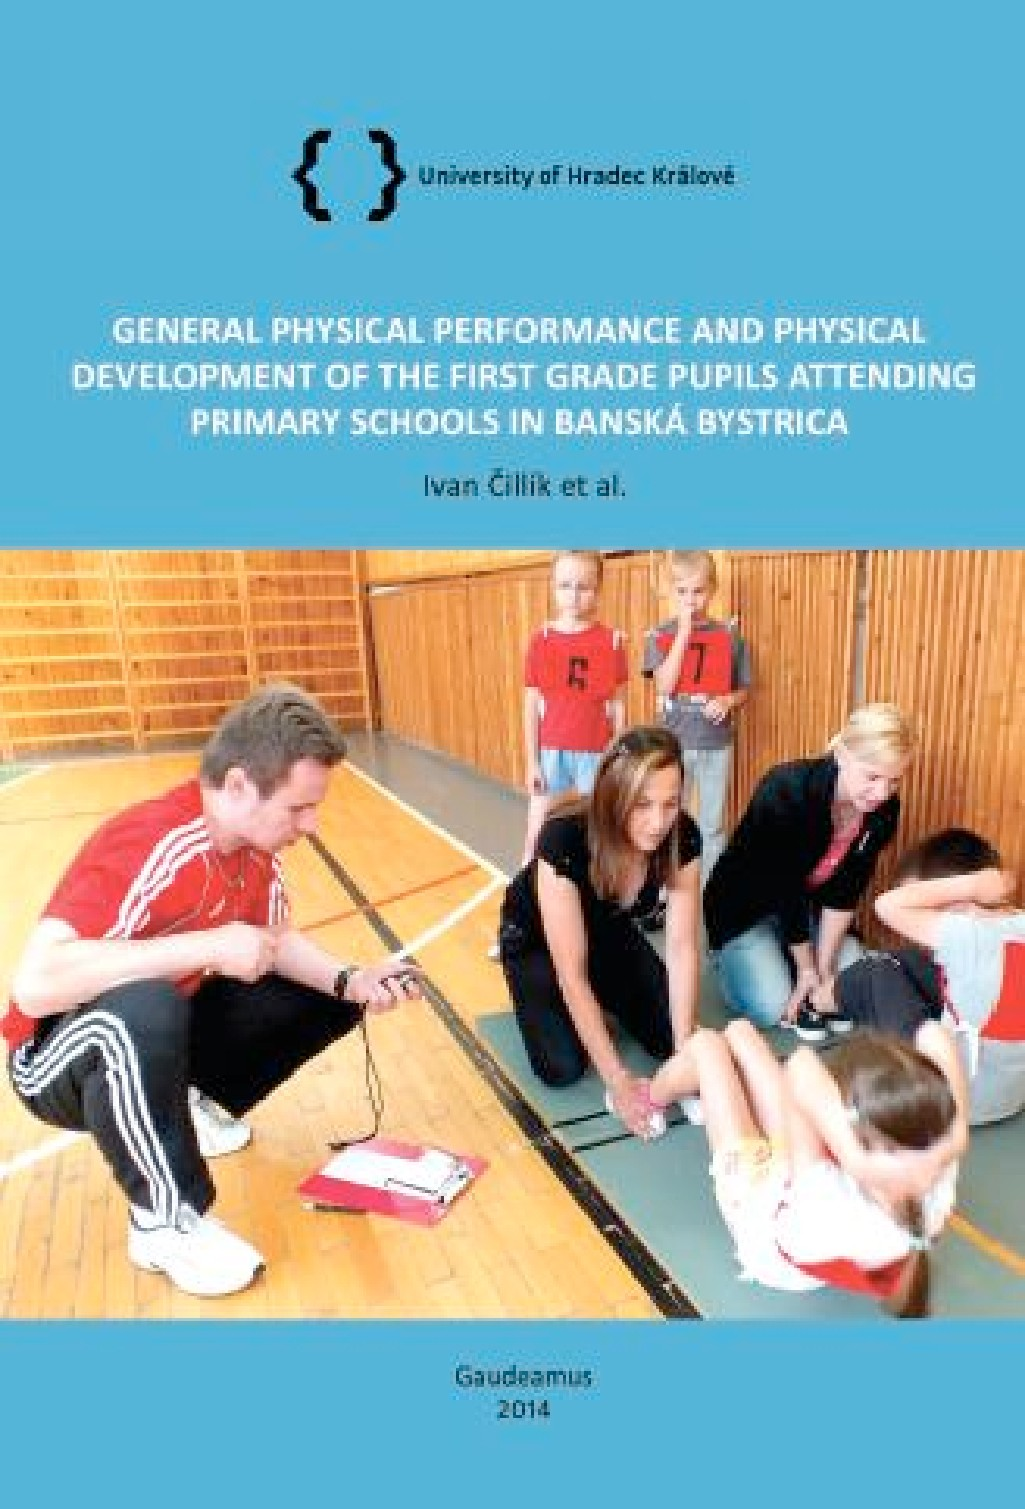 GENERAL PHYSICAL PERFORMANCE AND PHYSICAL DEVELOPMENT OF THE FIRST GRADE PUPILS ATTENDING PRIMARY SCHOOLS IN BANSKÁ BYSTRICA